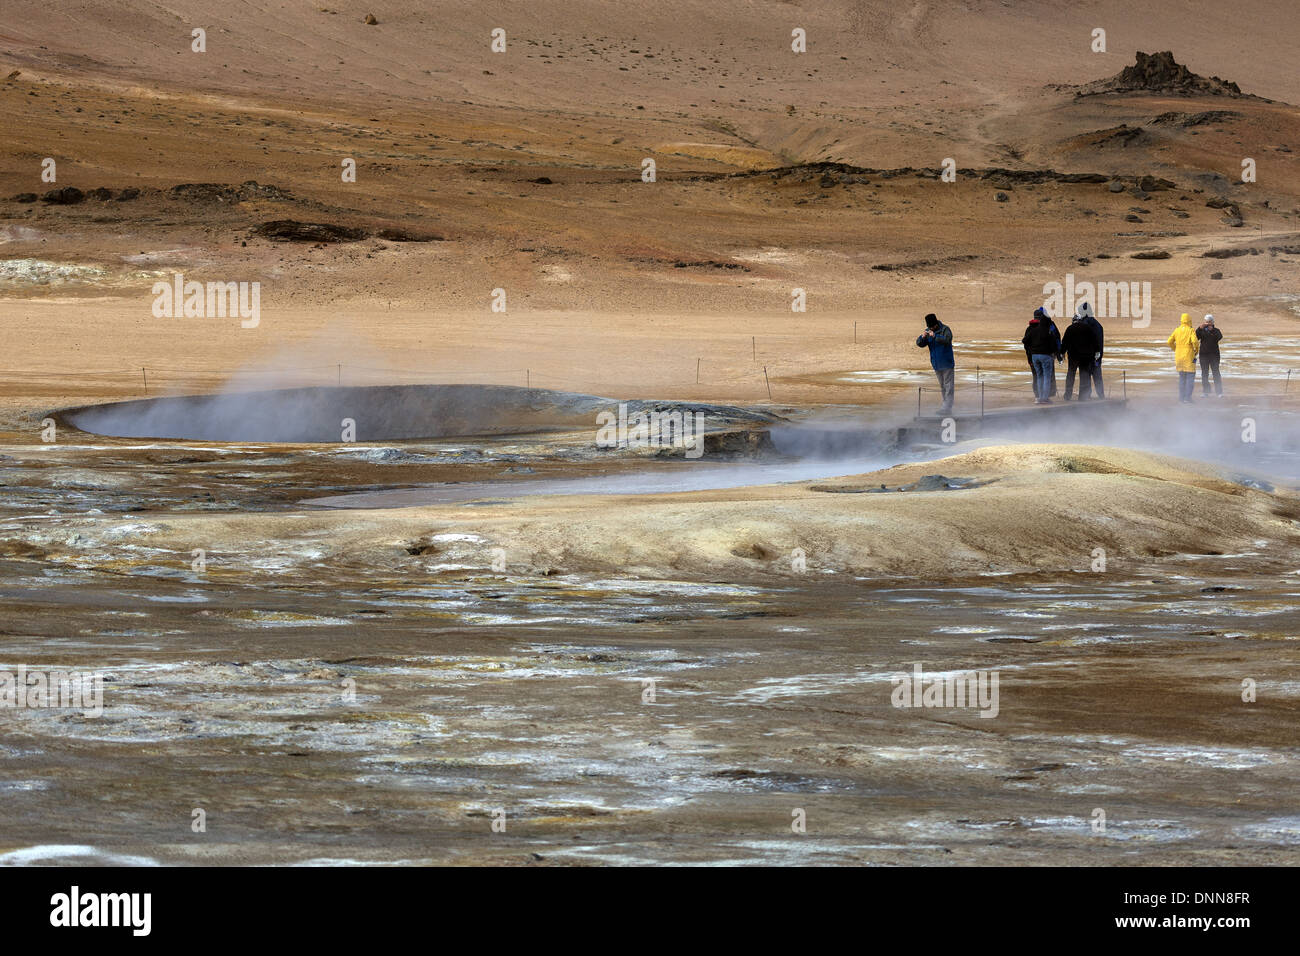 Tourists on the Hverarond geothermal hot spring area examining the steaming and bubbling mud pools, north east Iceland - Stock Image